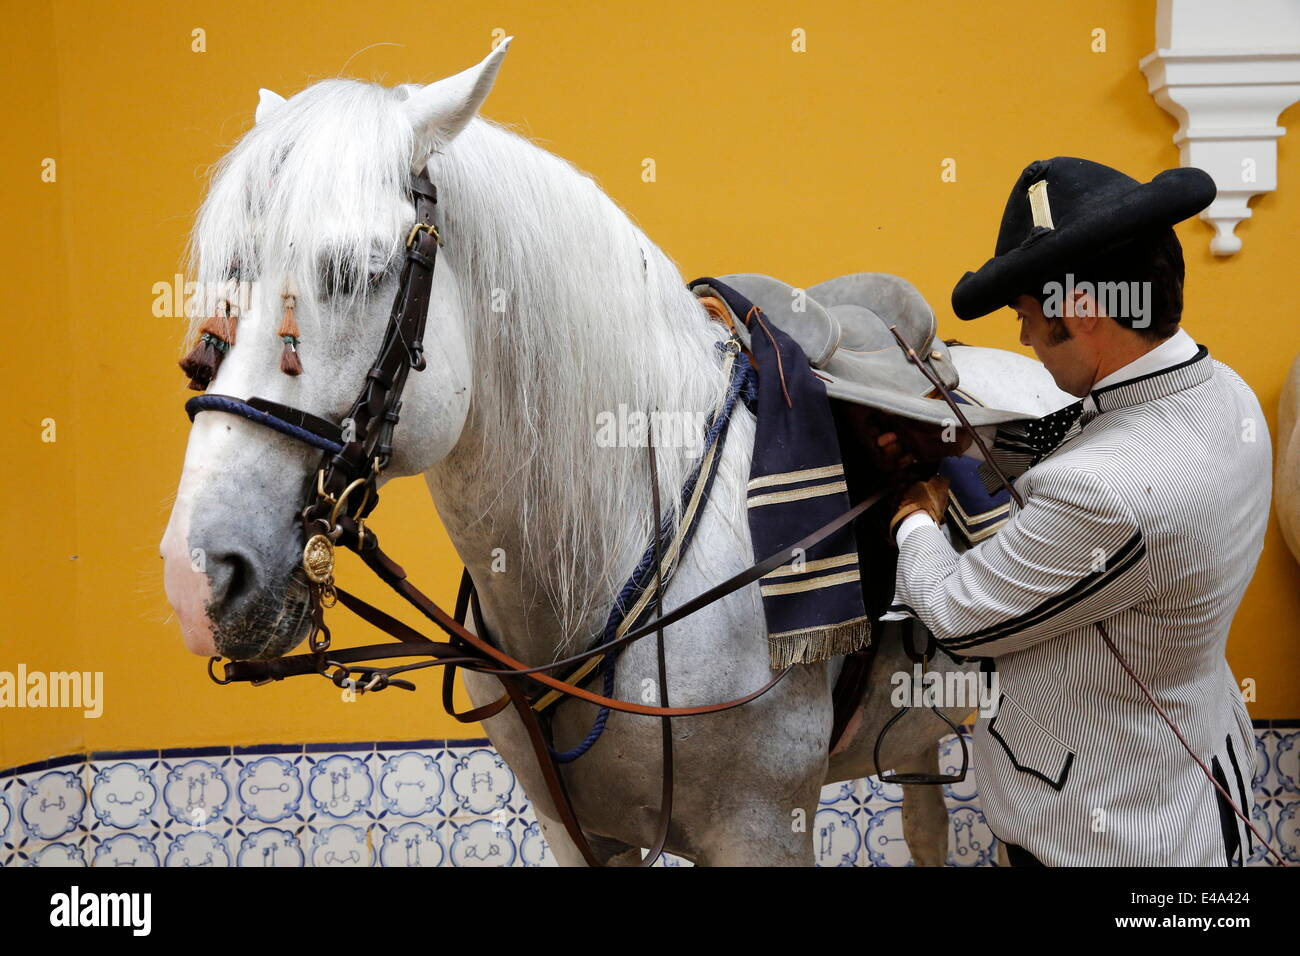 Preparing a horse to be ridden at the Royal Andalusian School of Equestrian Art, Jerez, Andalucia, Spain, Europe - Stock Image